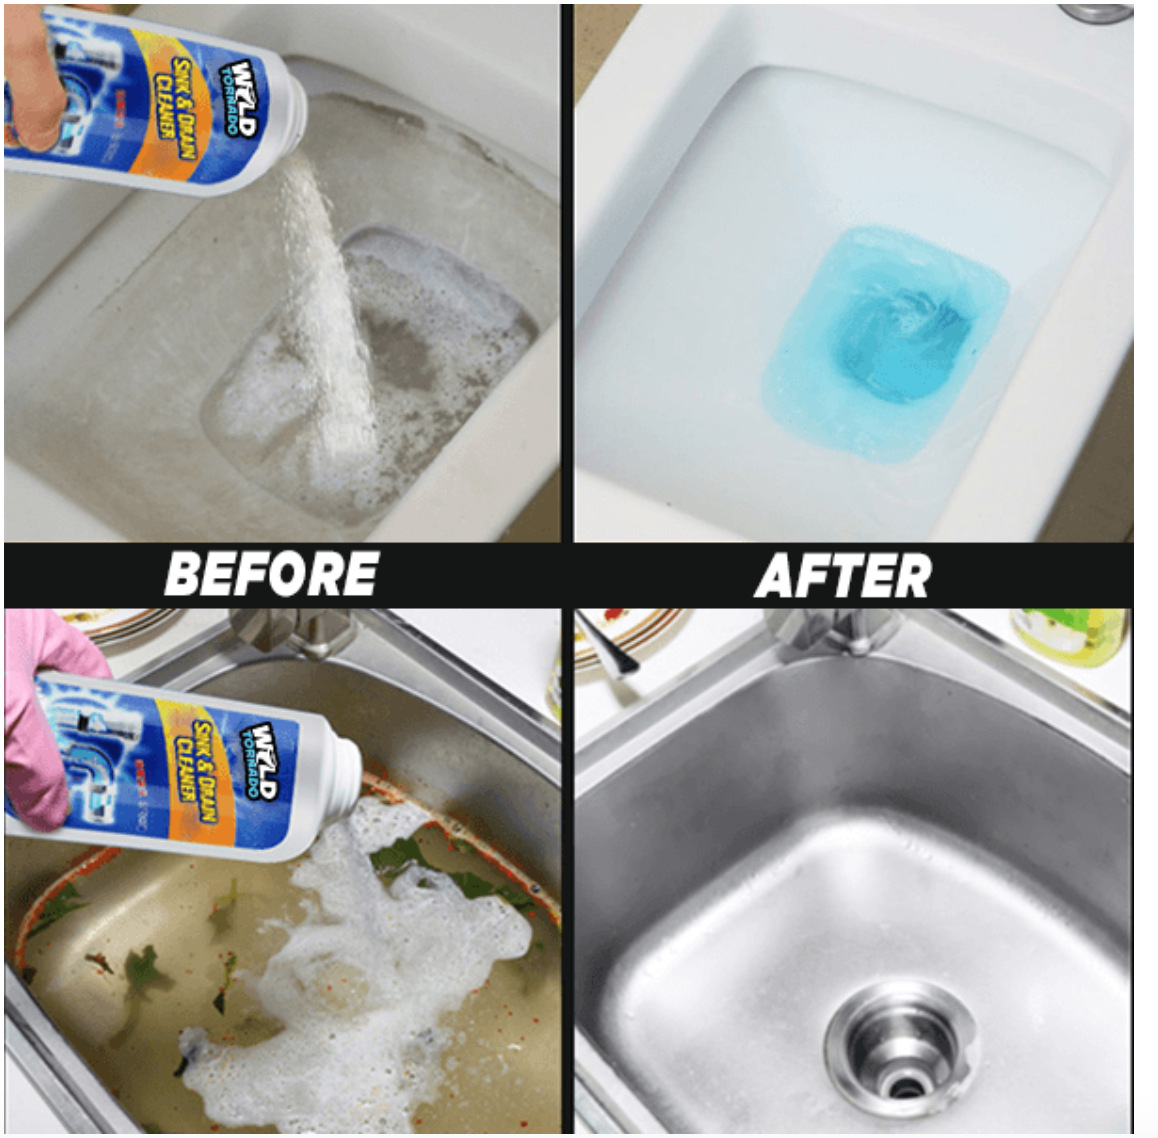 (Buy 1 Get 1 Free) Magic Pipe Cleaning Powder-HOT SALE